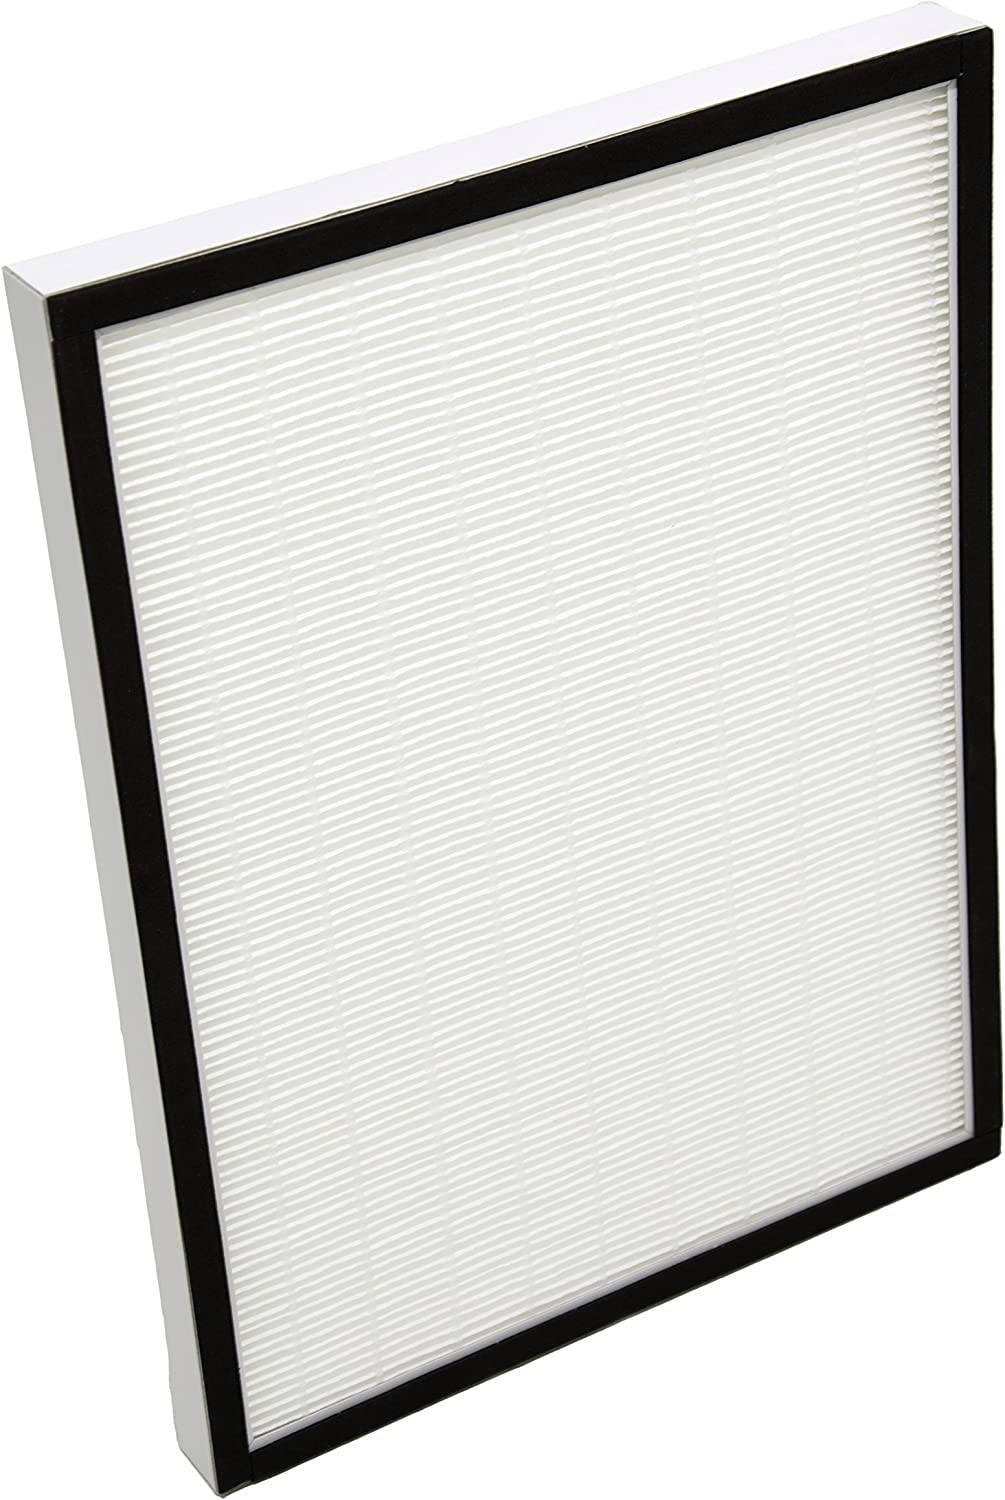 Amazon Com True Hepa Replacement Compatible With Kenmore 83190 Air Filter For Kenmore Air Cleaner Models 85250 83250 Appliances